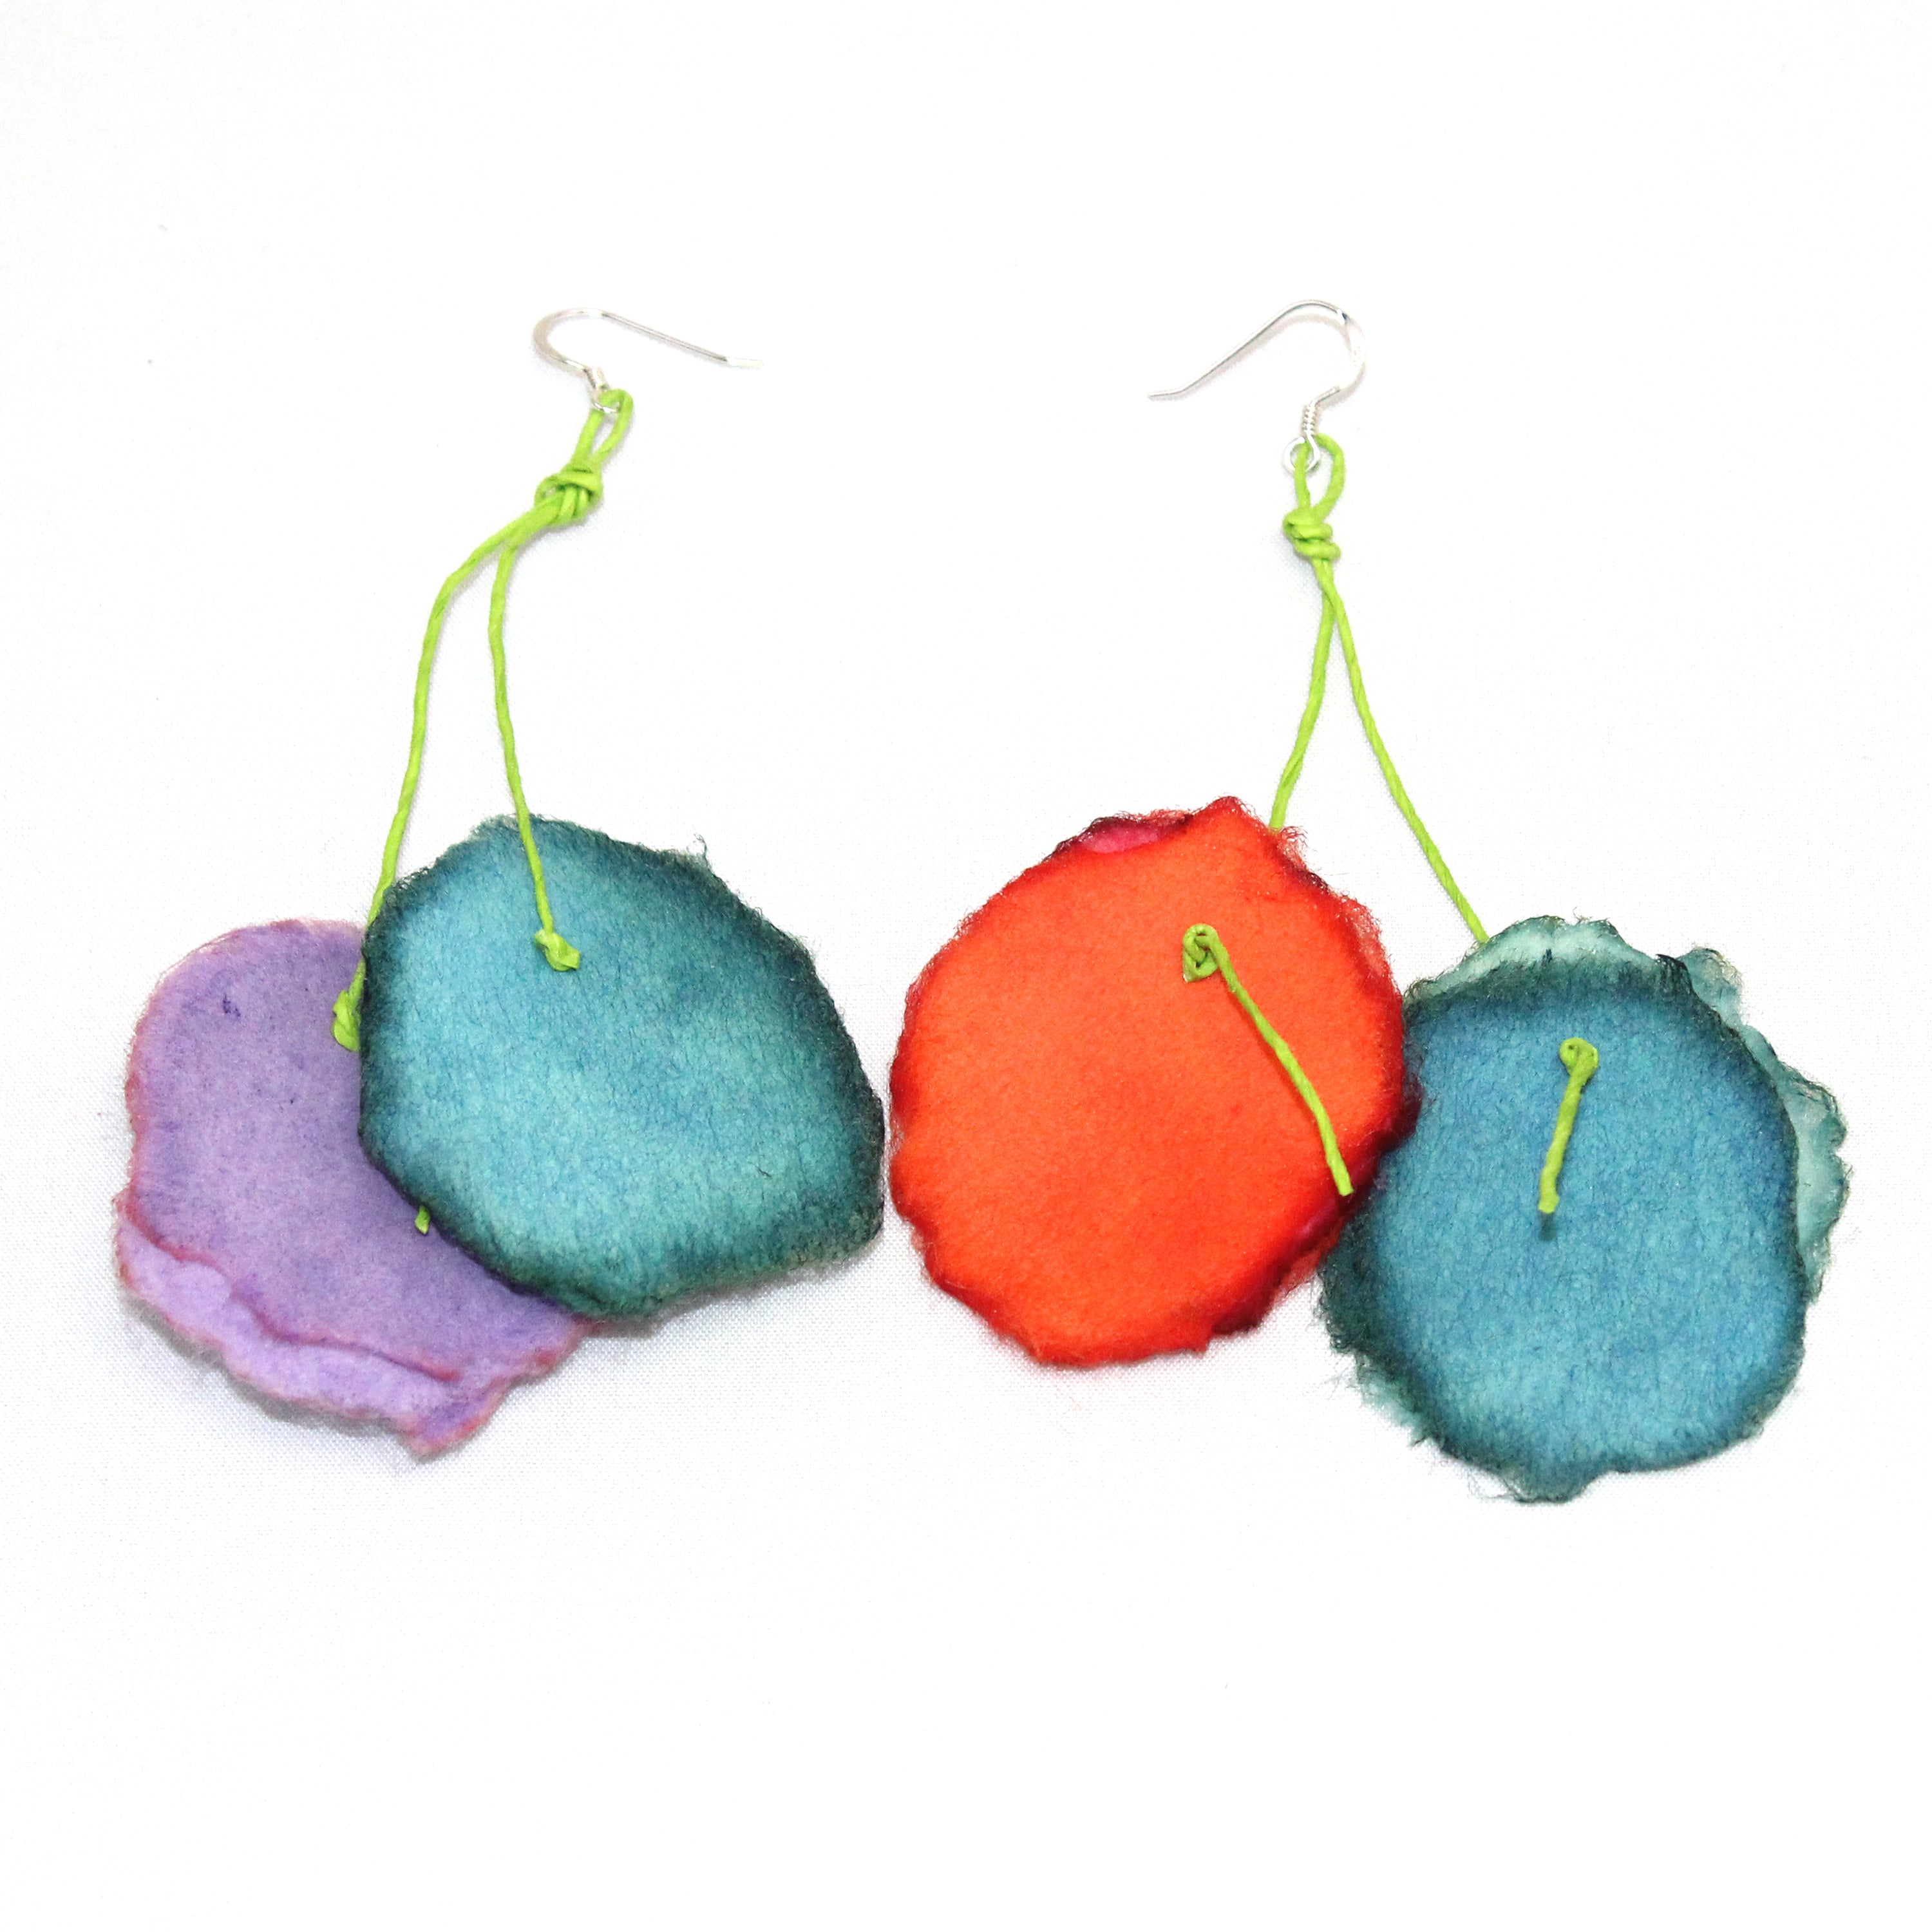 Begona Rentero Earrings, Ruff Color, Floral